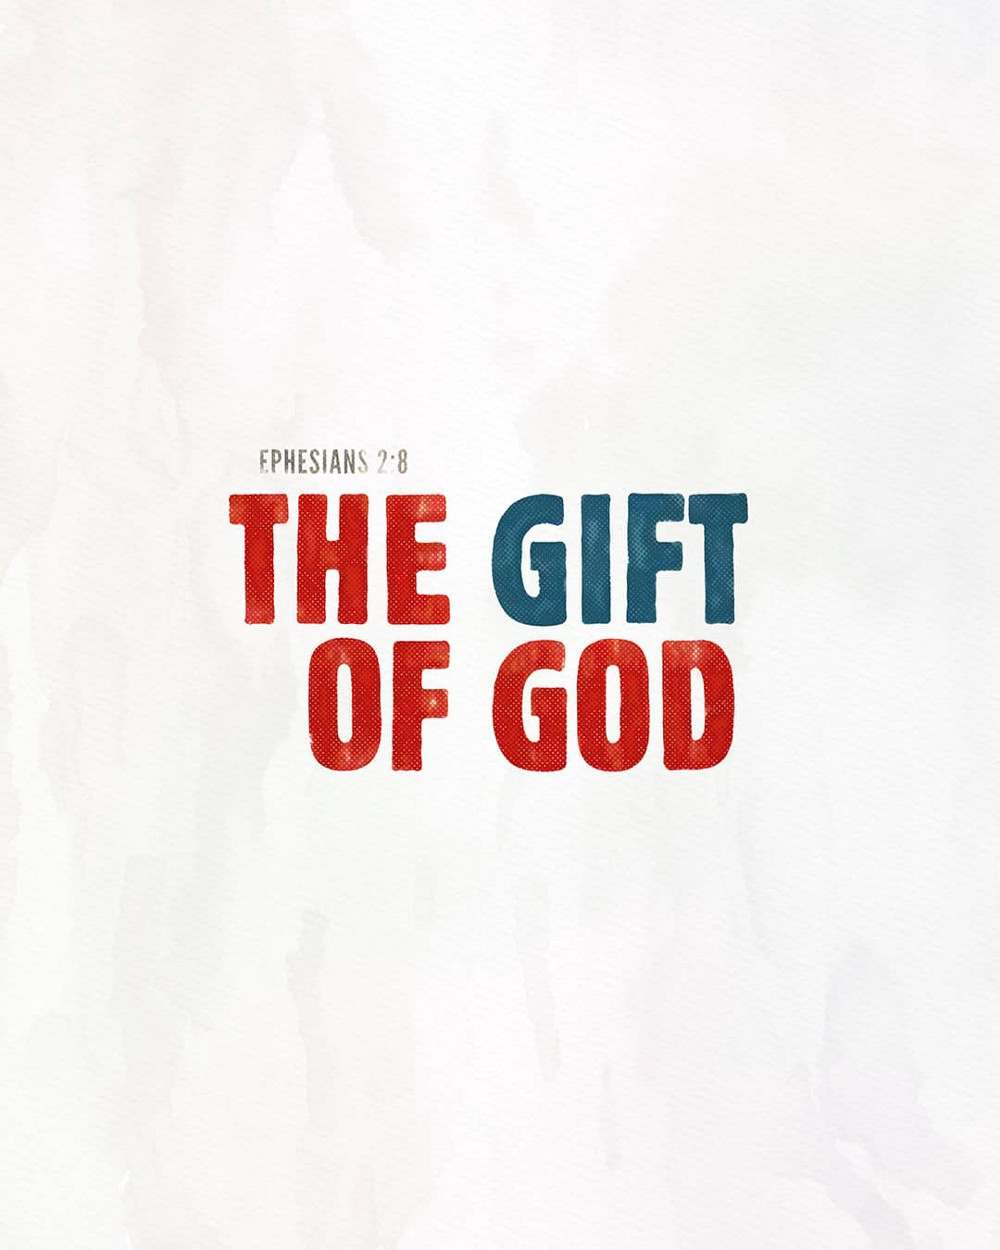 The gift of God—Small Voice Today